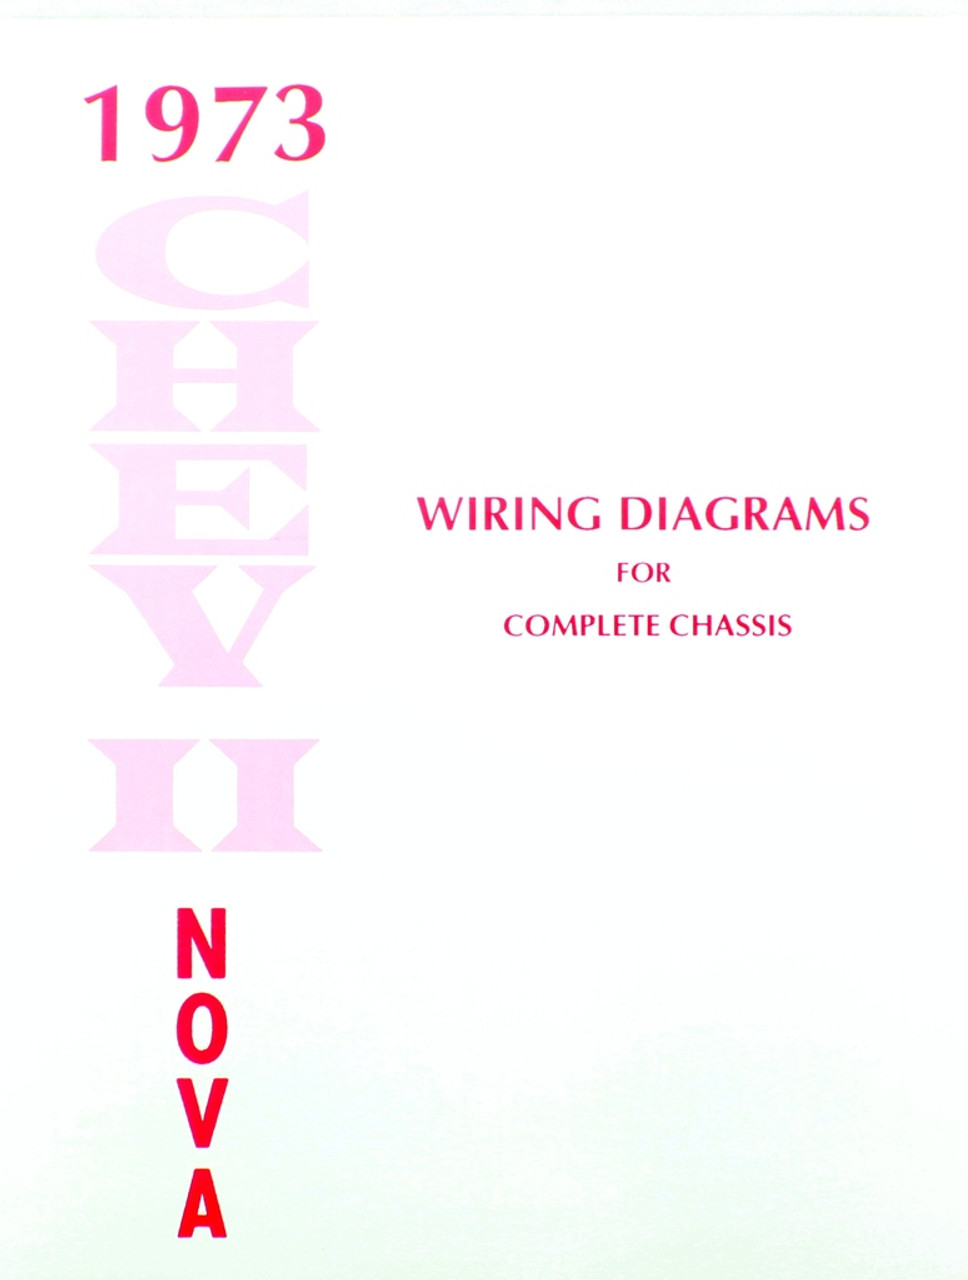 73 chevy nova electrical wiring diagram manual 1973 i 5 classic chevy rh i5chevy com Home Electrical Wiring Diagrams Air Conditioner Schematic Wiring Diagram